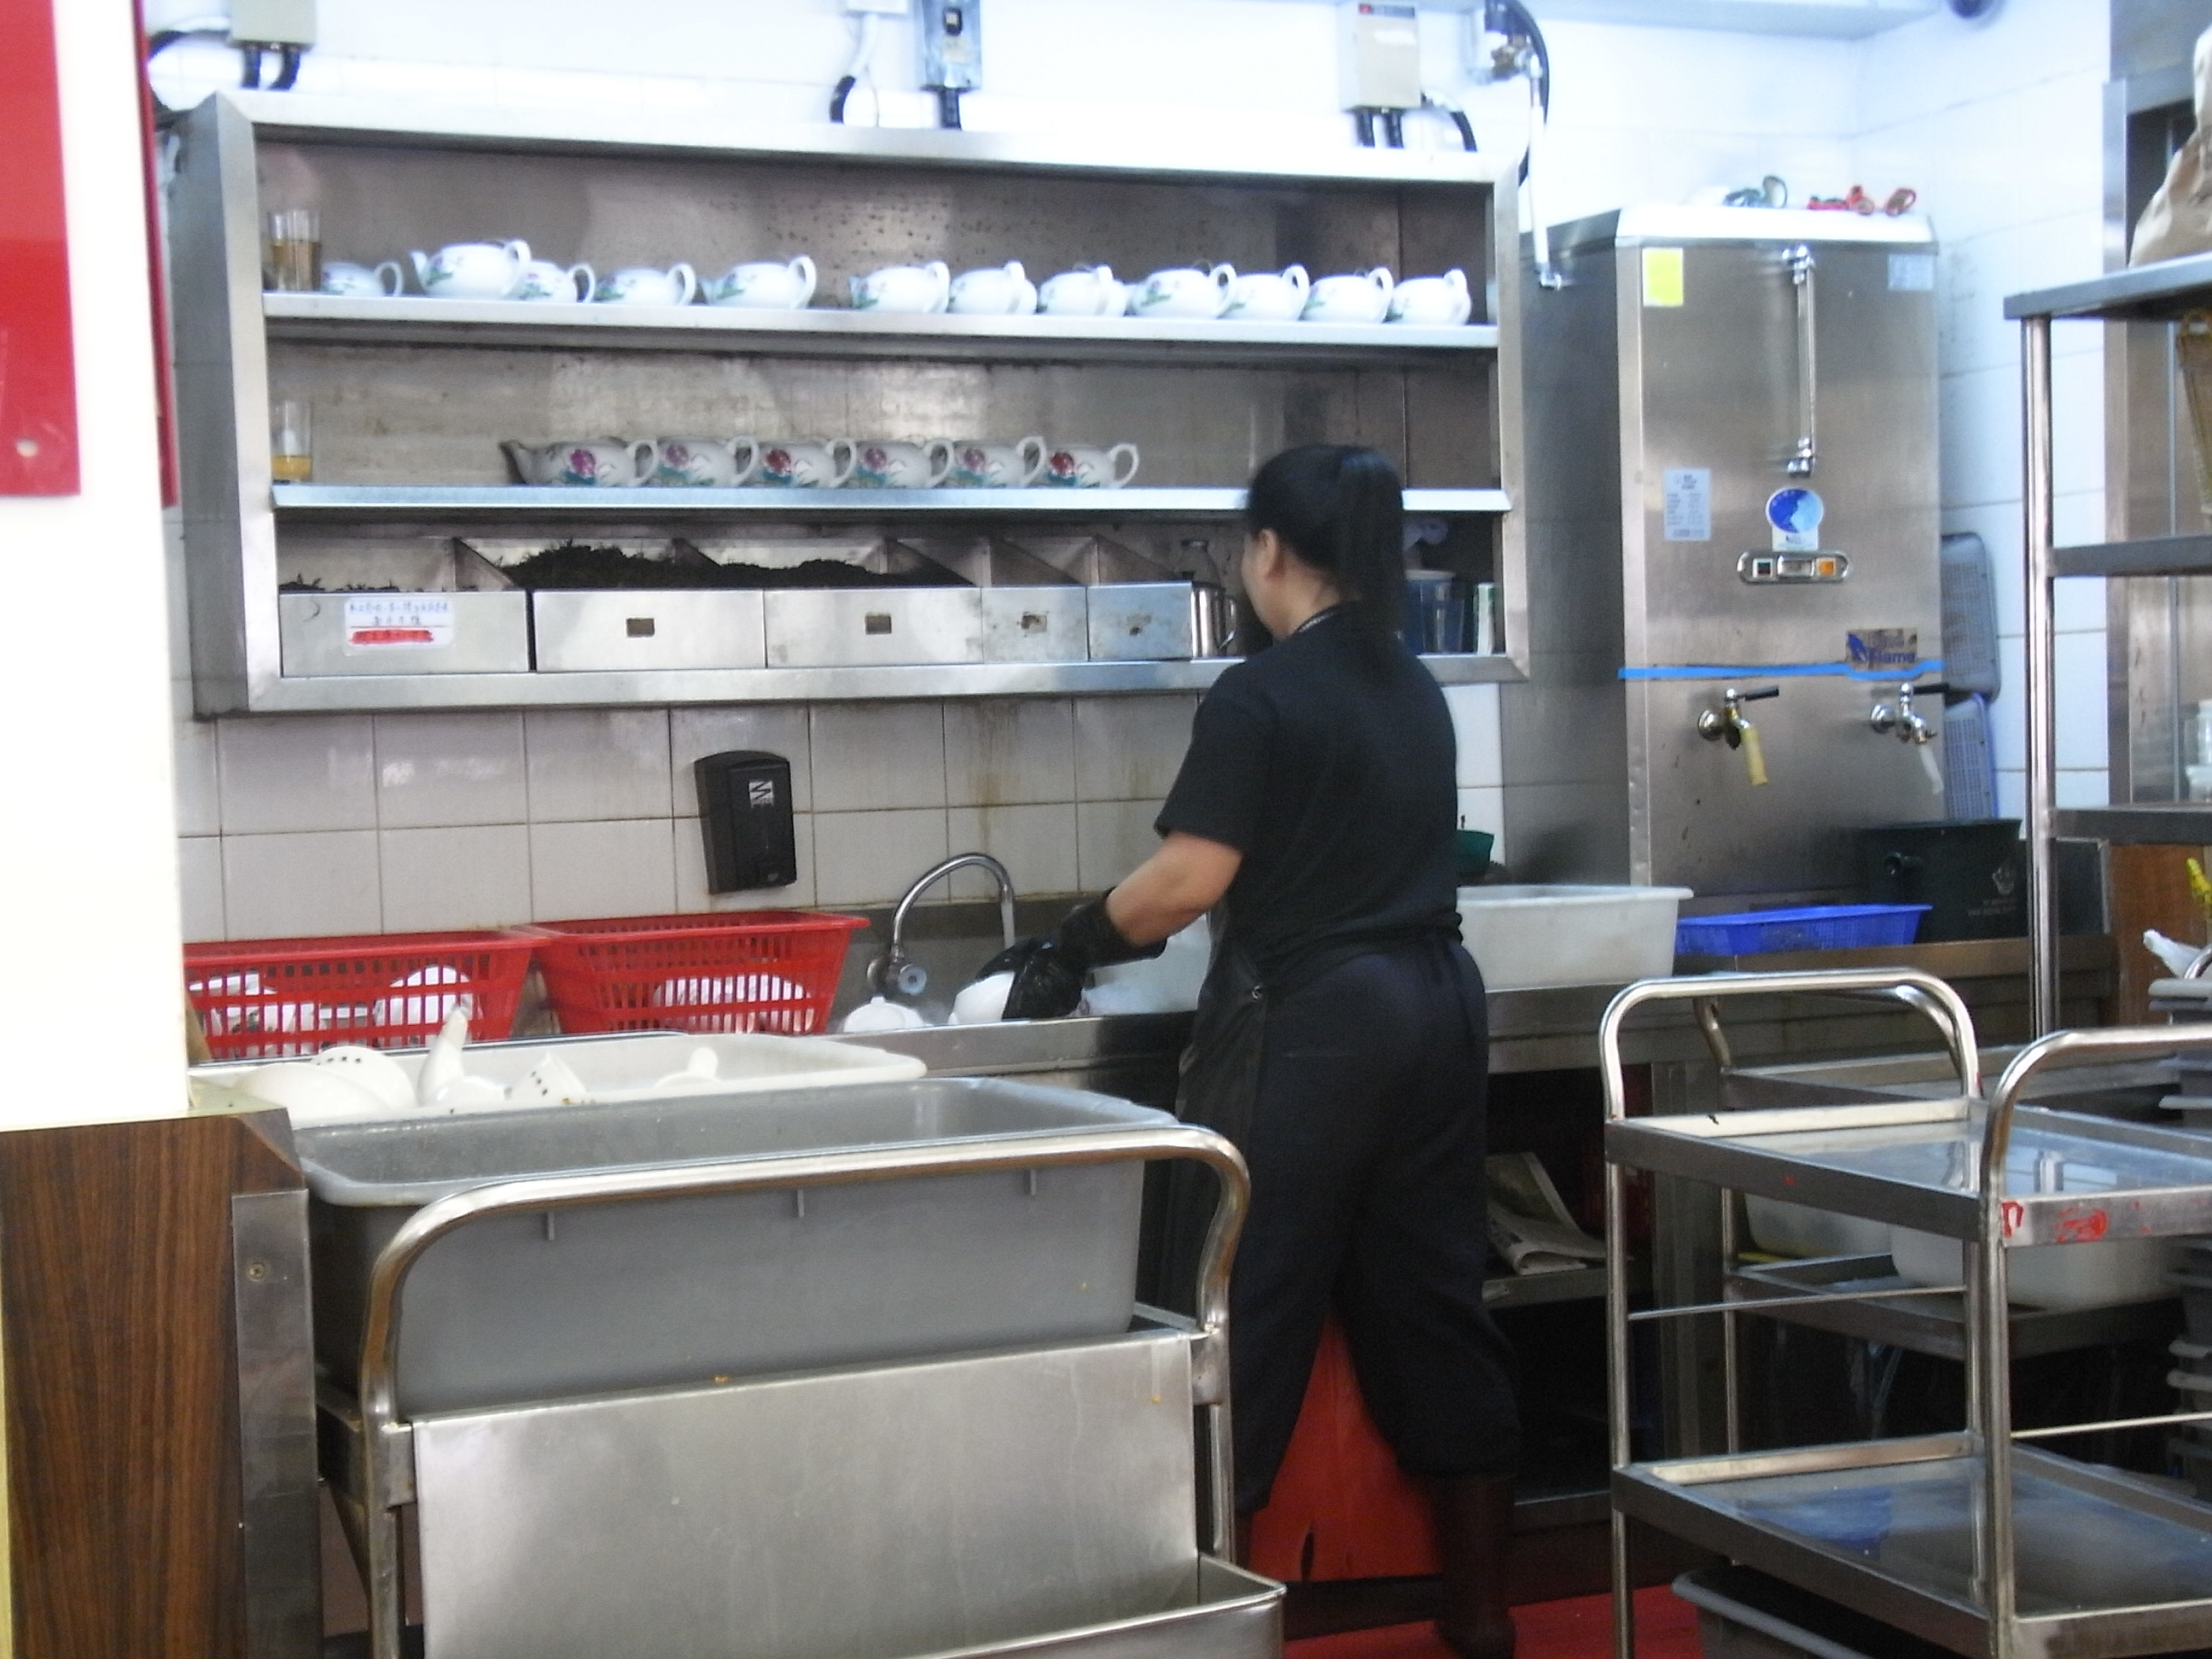 Our Comprehensive Restaurant Kitchen Cleaning Checklist